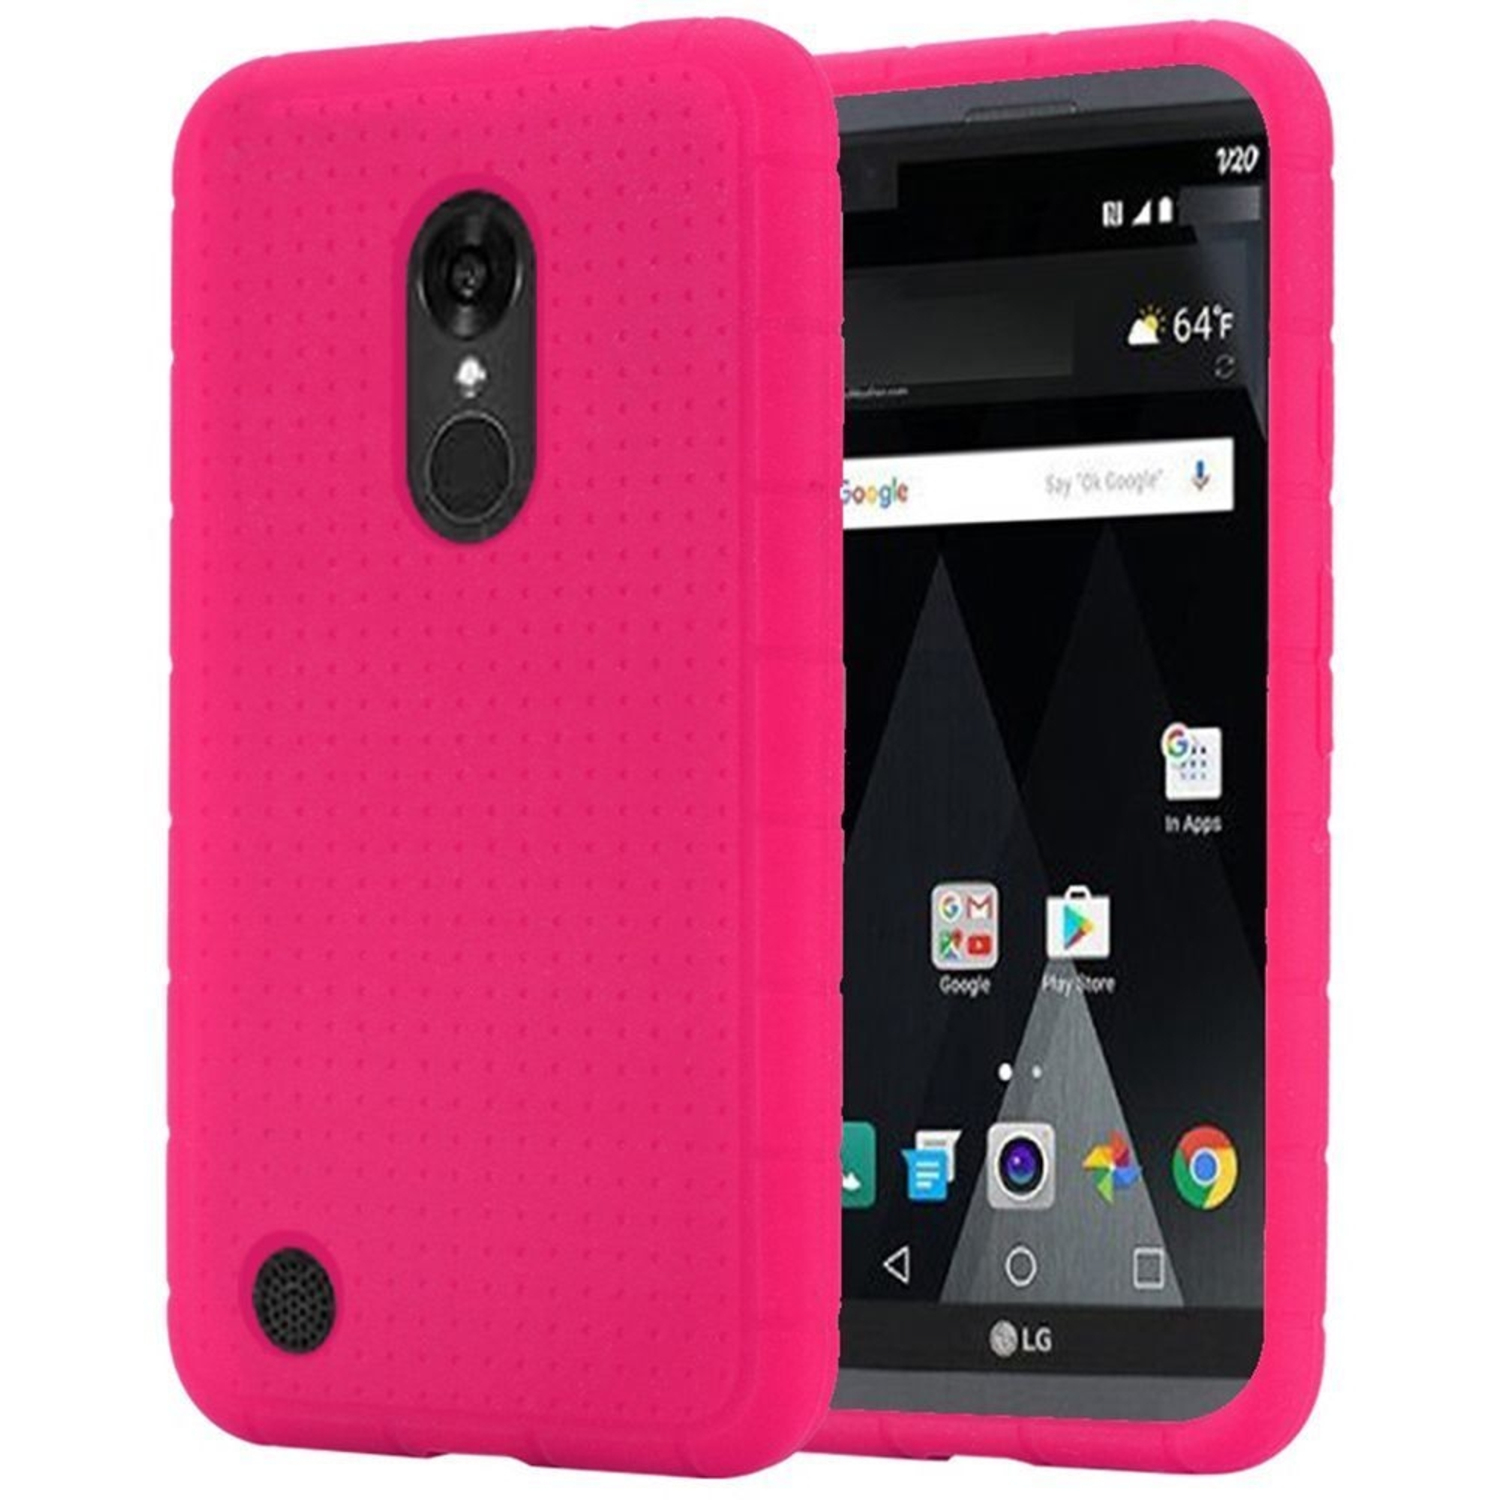 LG Aristo Phone Case, by Insten Rugged Rubber Silicone Soft Skin Gel Case Cover For LG Aristo / K8 2017 / LV3 / MS210